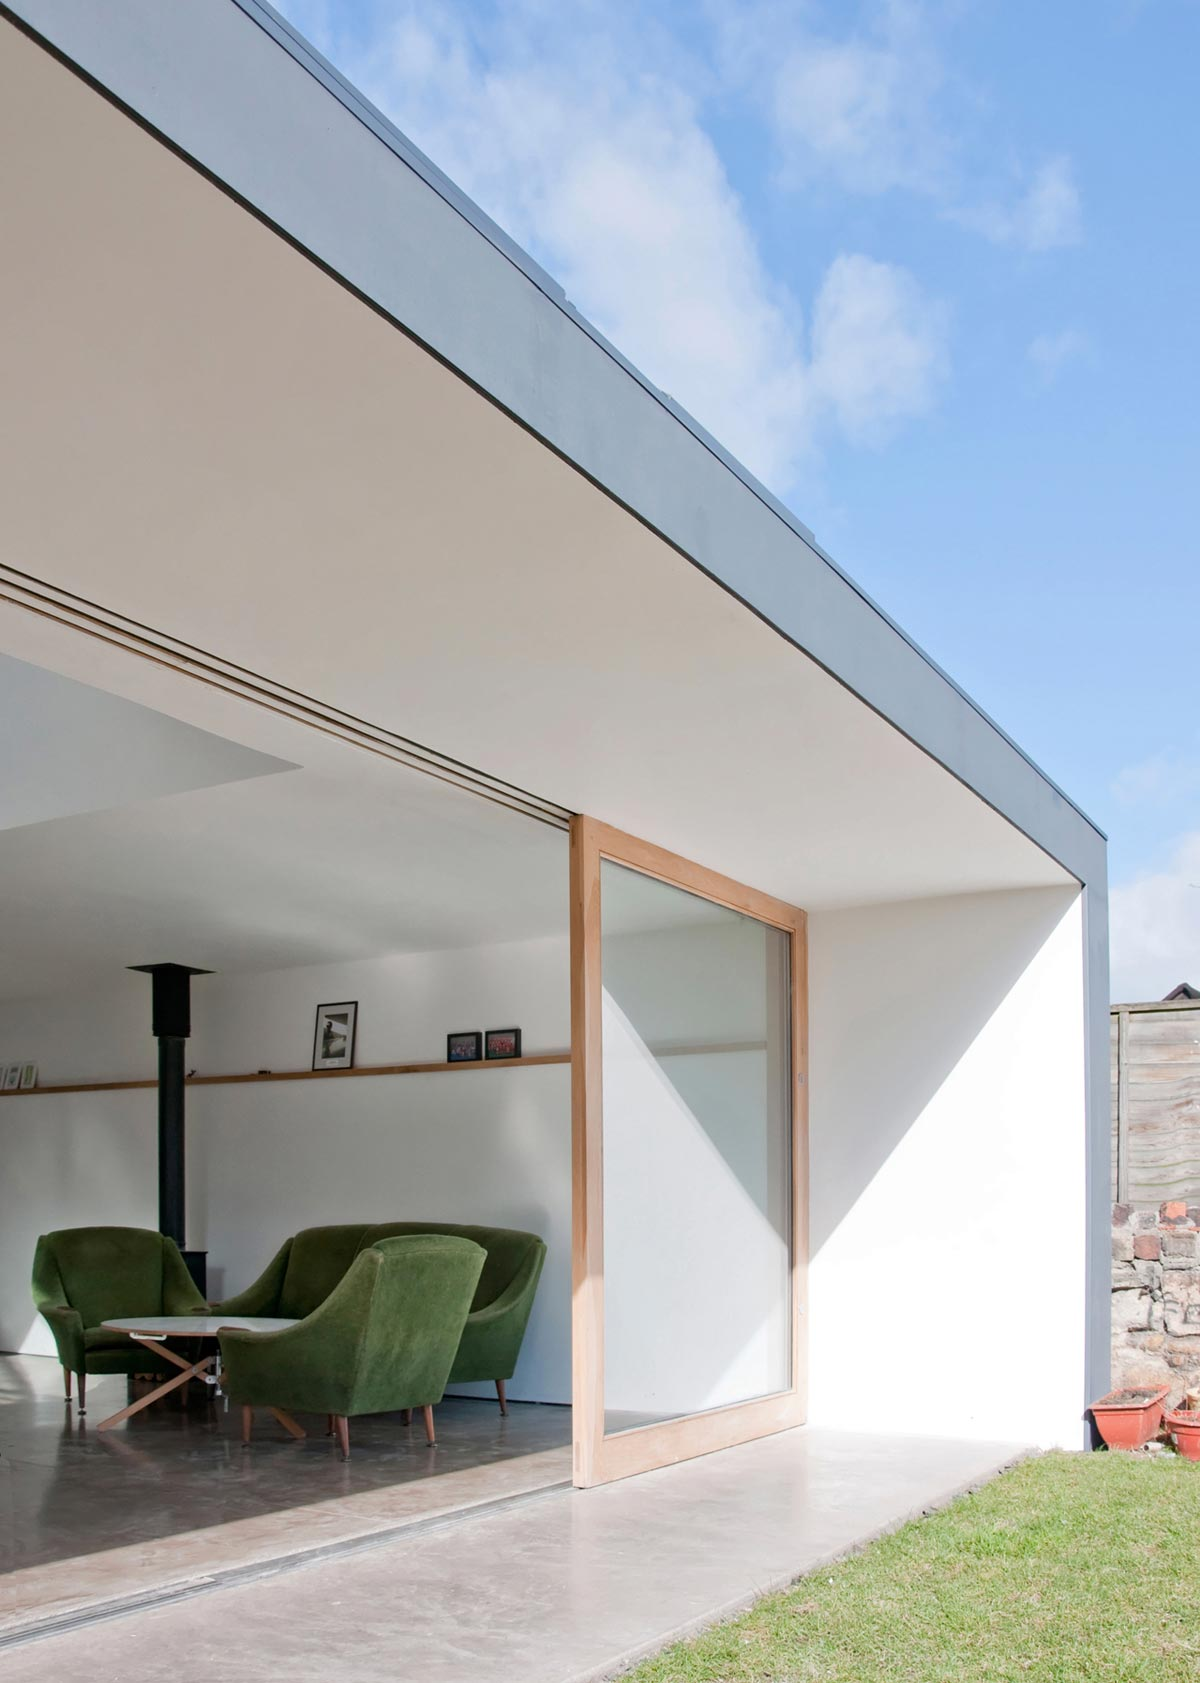 Japanese House, Edinburgh / Konishi Gaffney Architects